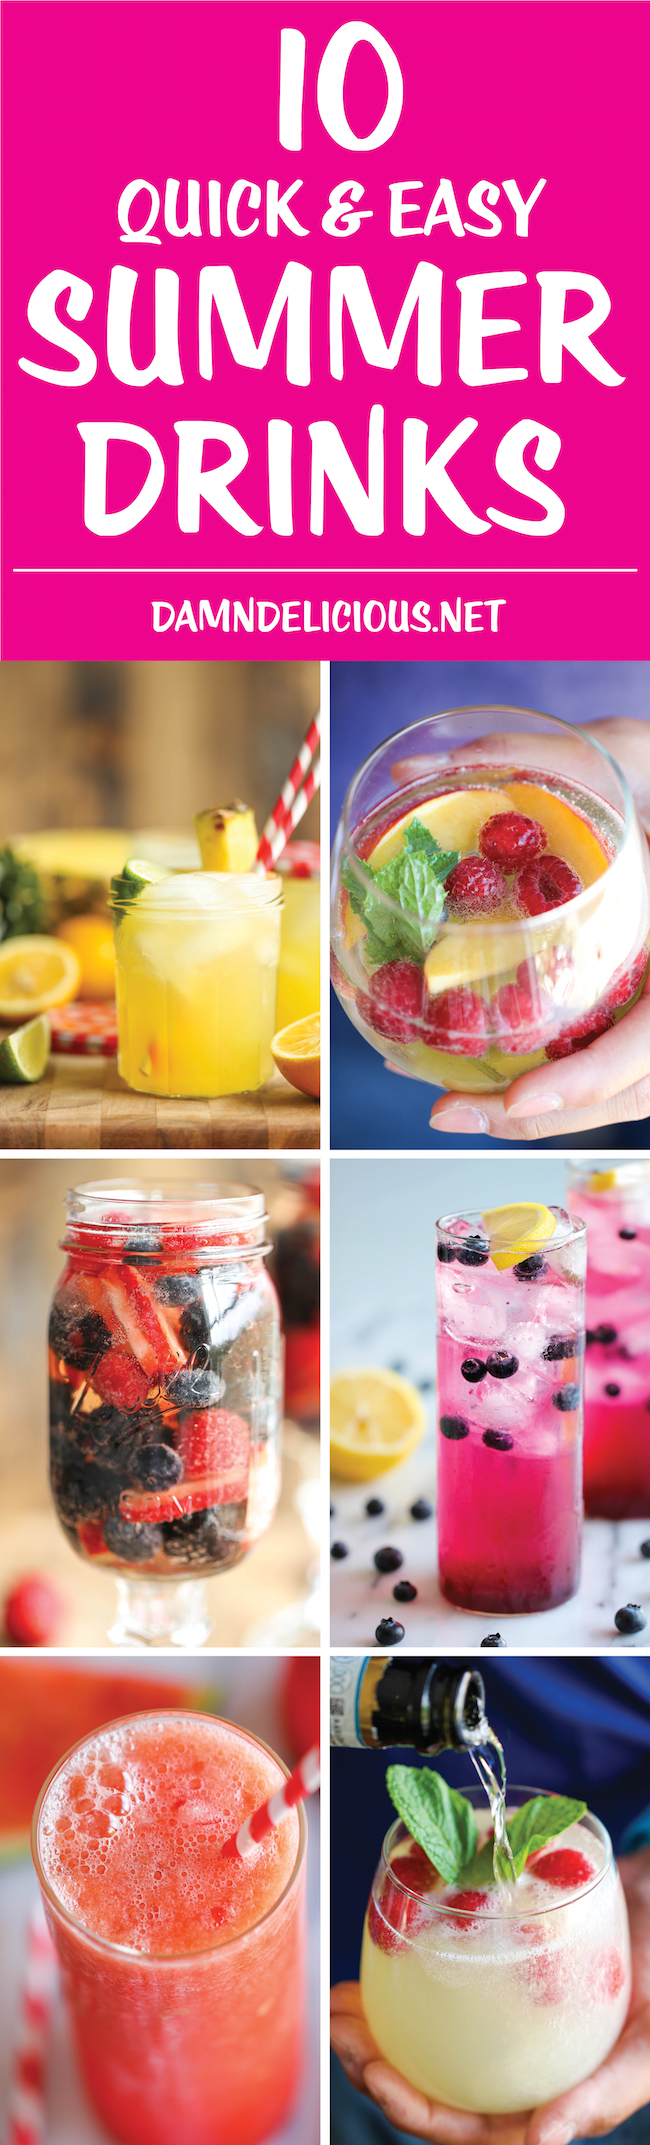 10 Quick and Easy Summer Drinks